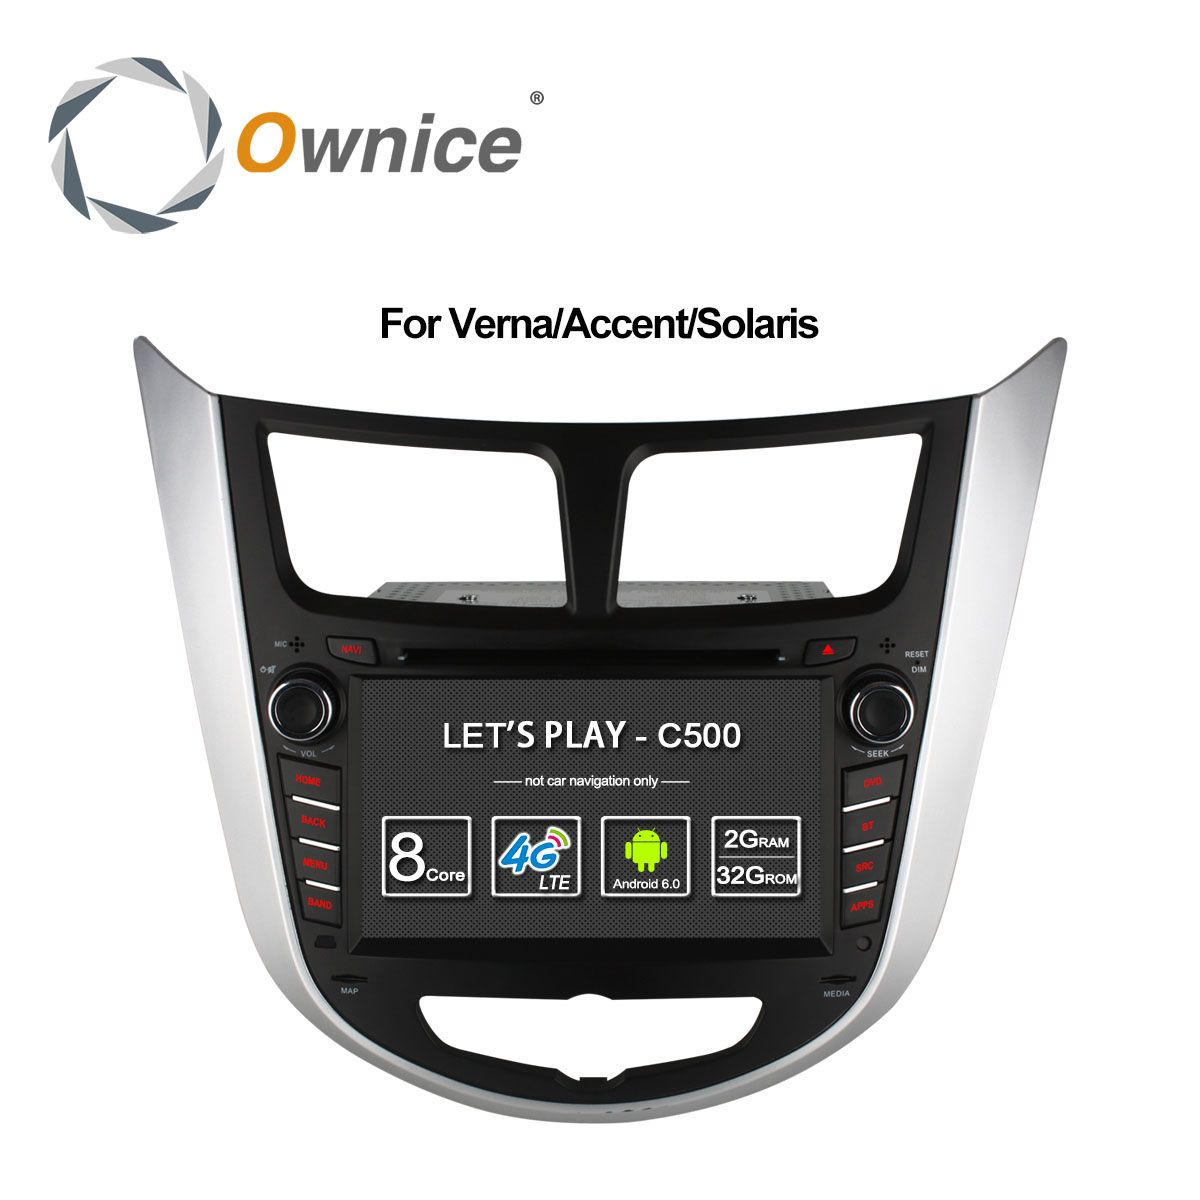 Ownice C500 Octa 8 Core Android 6.0 CAR DVD player for Hyundai Solaris accent Verna i25 with GPS BT radio wifi 4G LTE Network